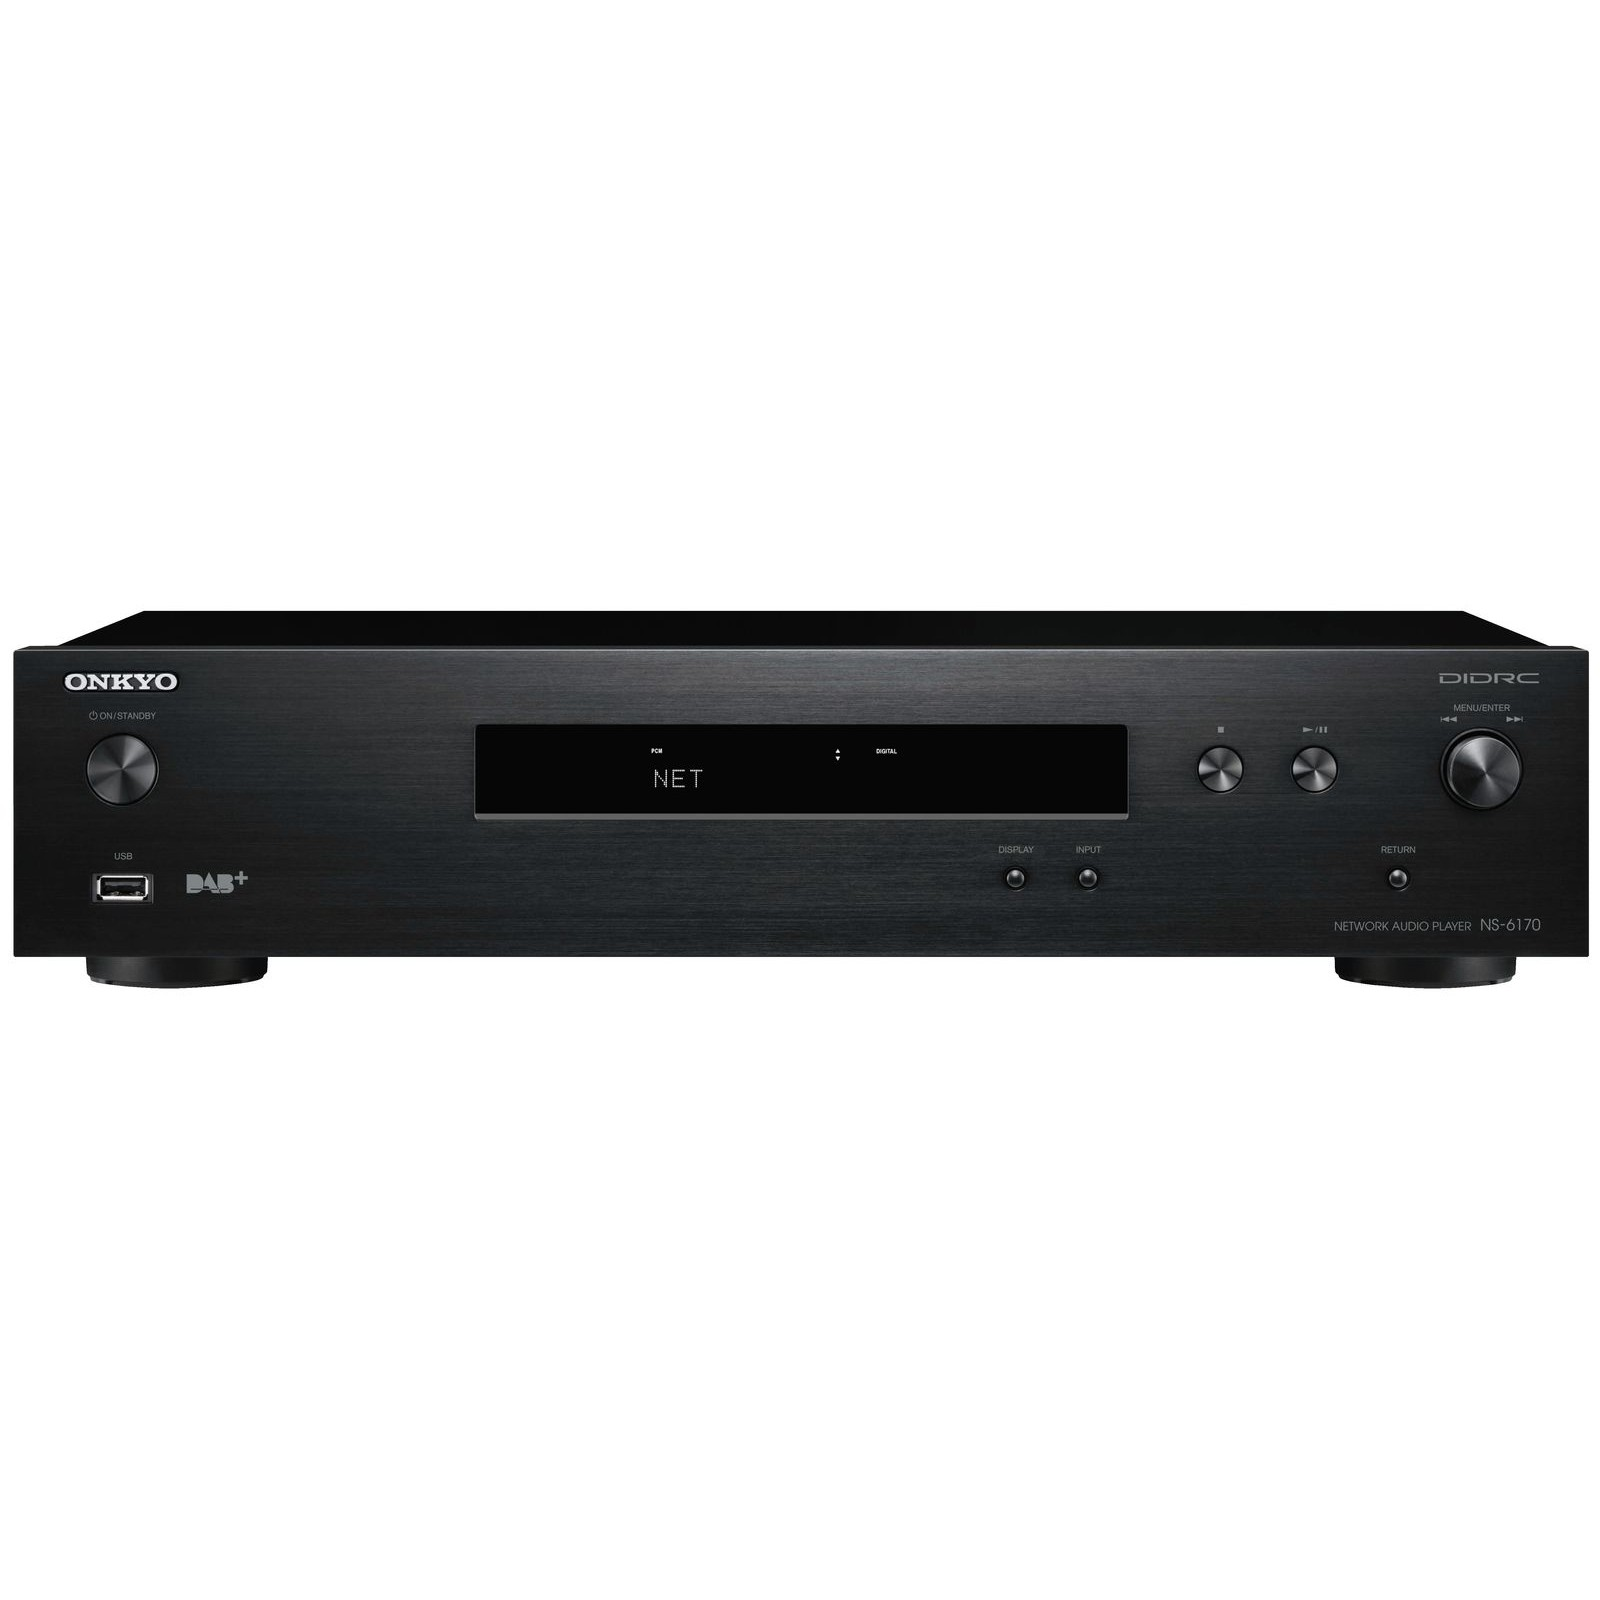 Buy the Onkyo NS-6170 Network Audio Player with Bluetooth - Dual